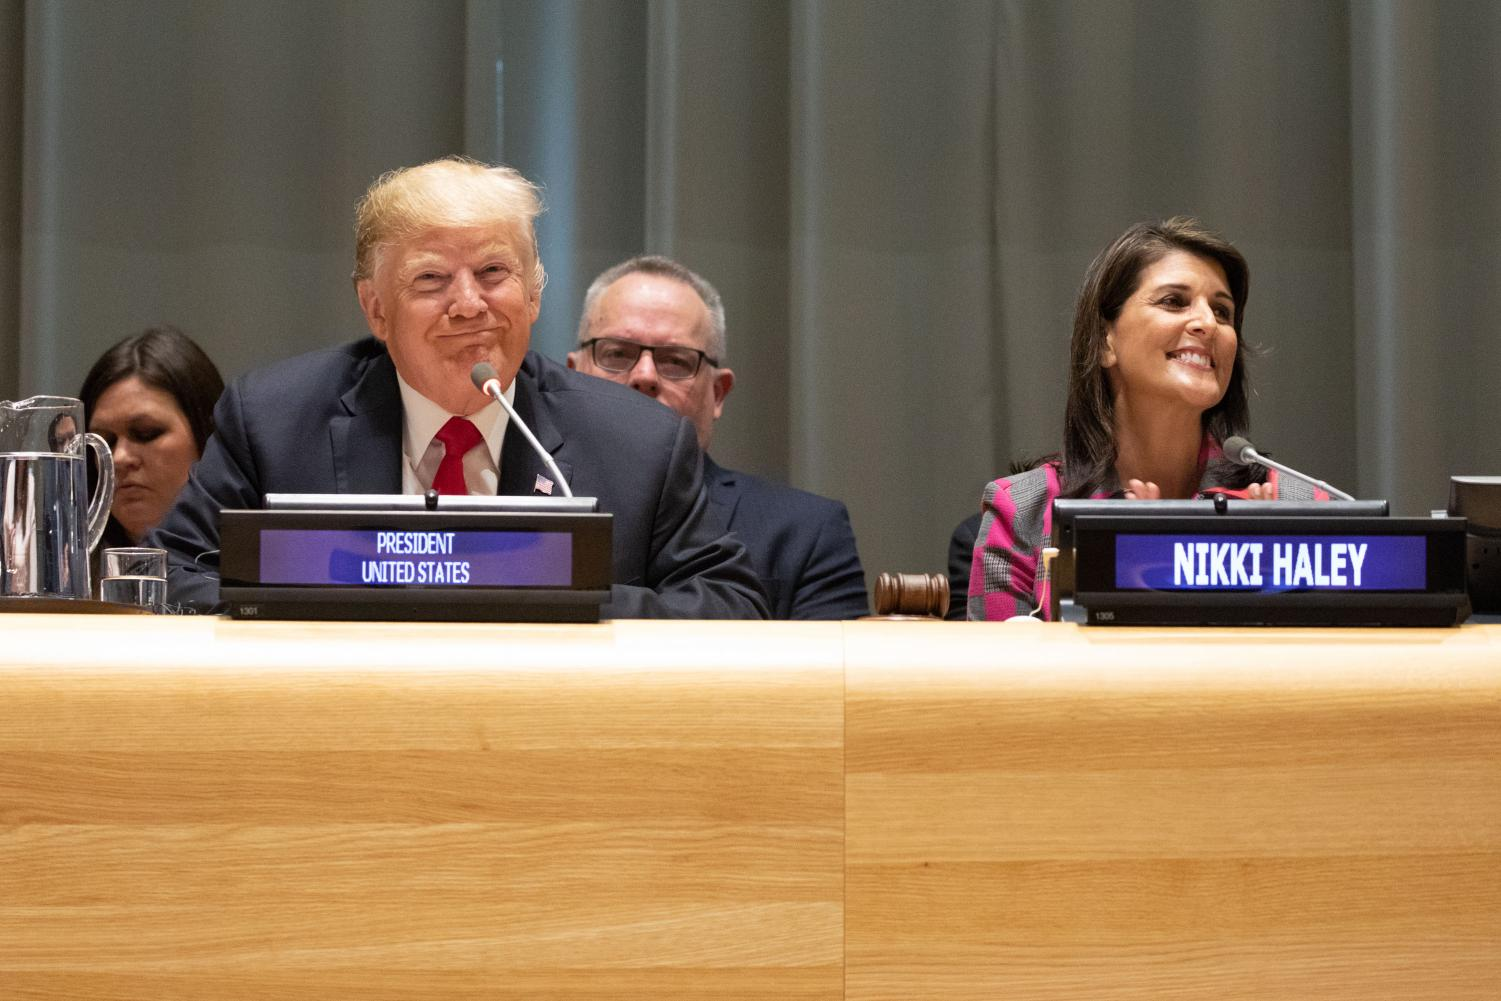 President Donald J. Trump participates in the Global Call to Action on the World Drug Problem. It took place Sept. 24 at the United Nations Headquarters in New York City.